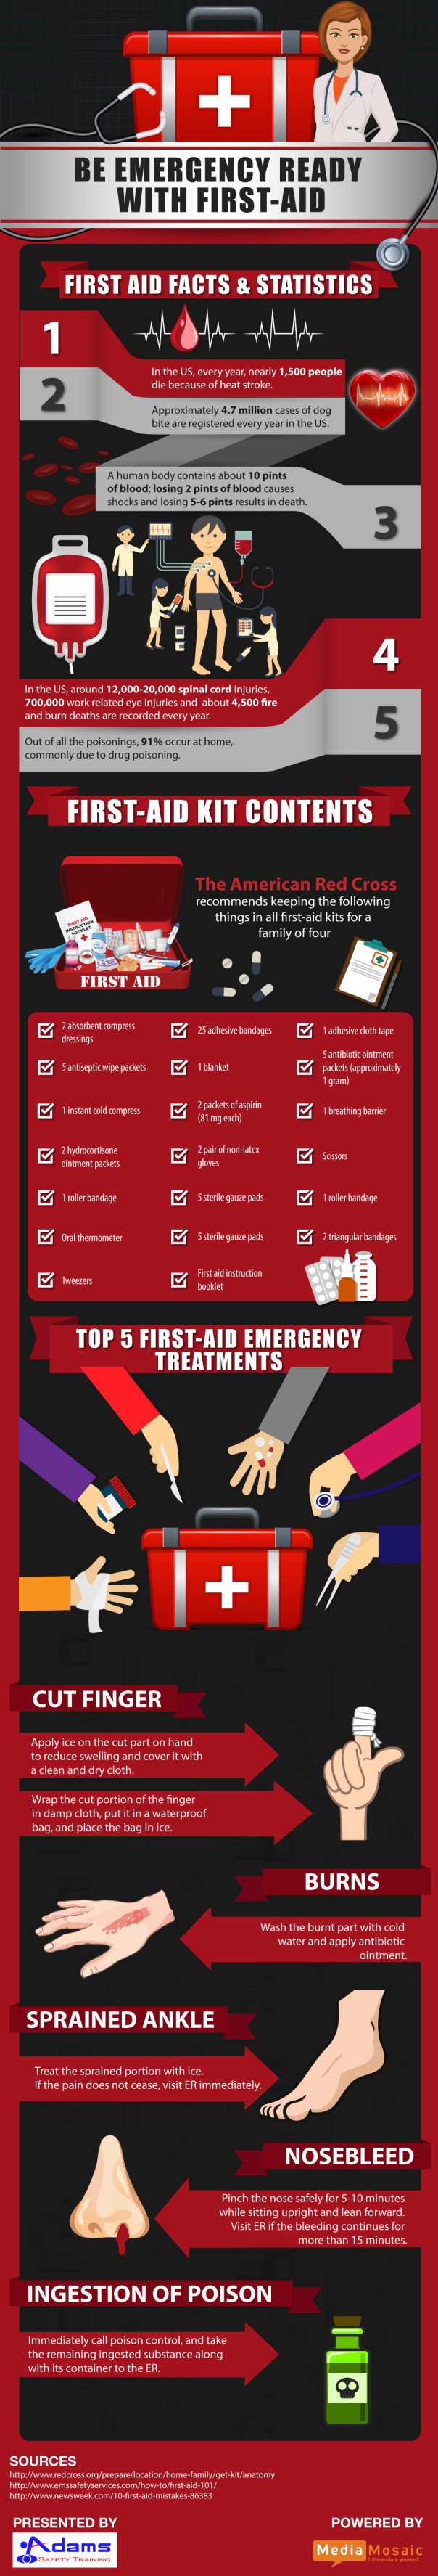 Be Emergency Ready for First-Aid